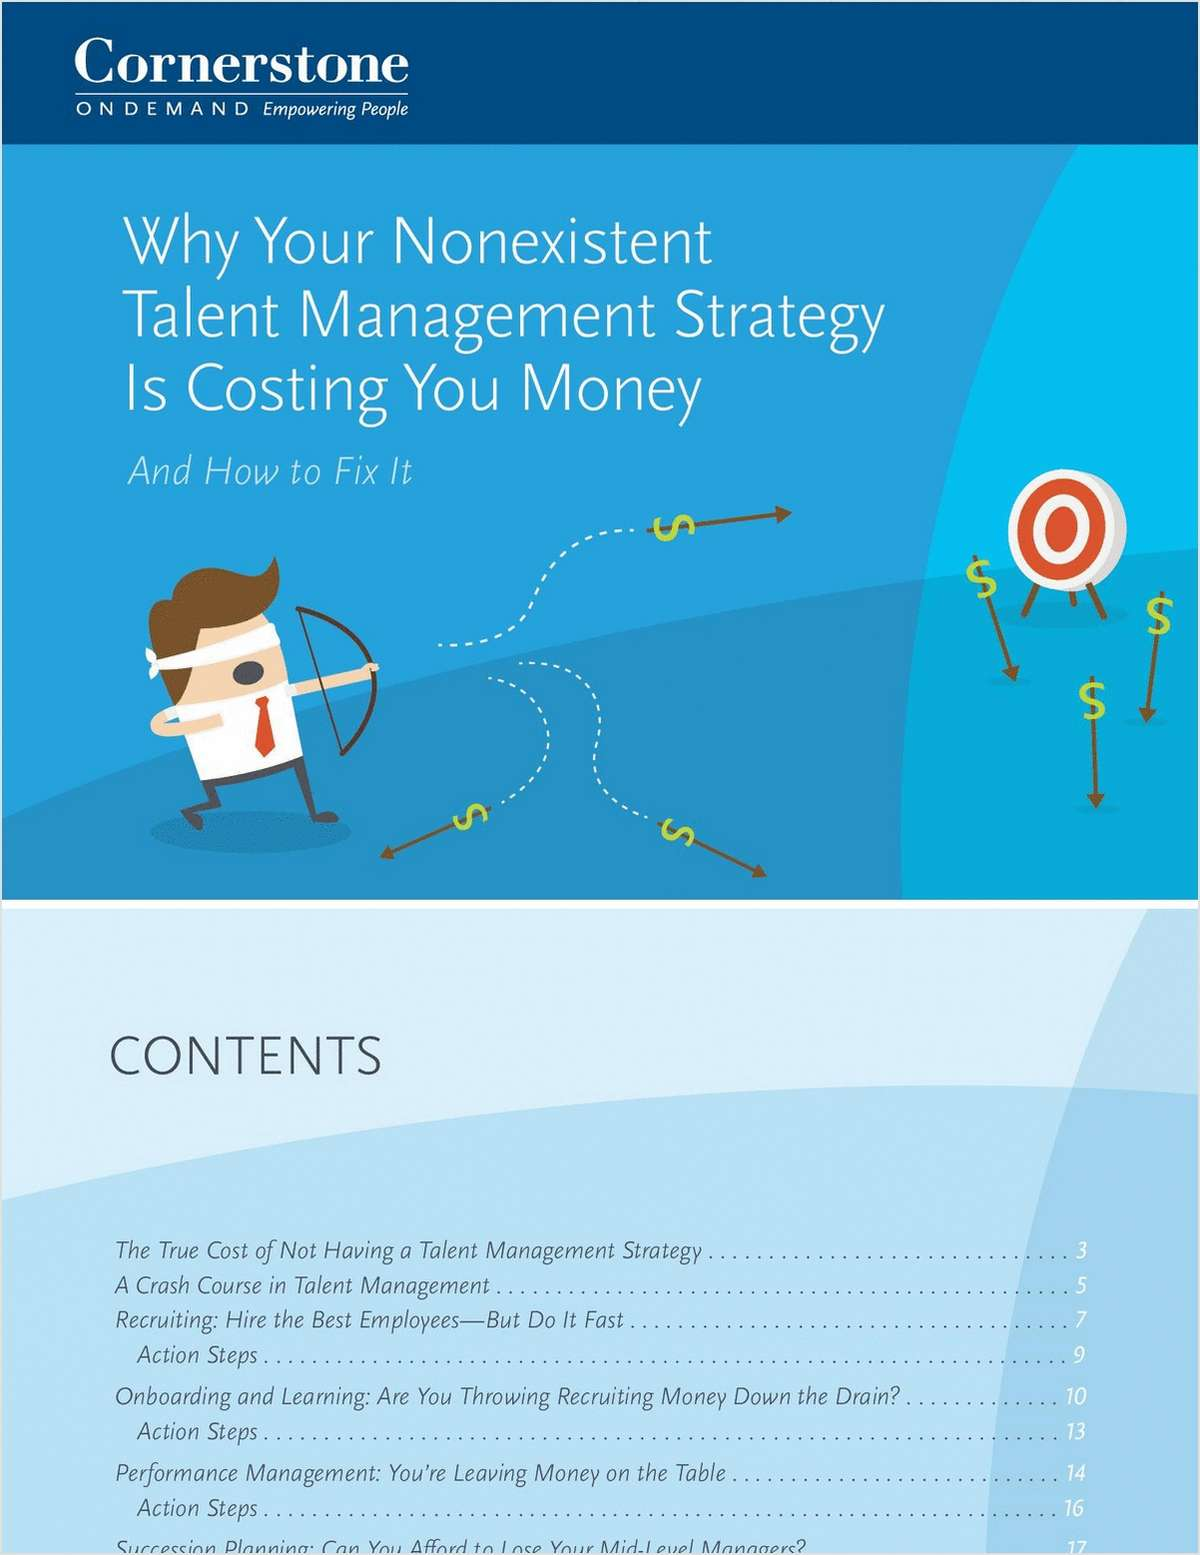 Why Your Nonexistent Talent Management Strategy Is Costing You Money and How to Fix It